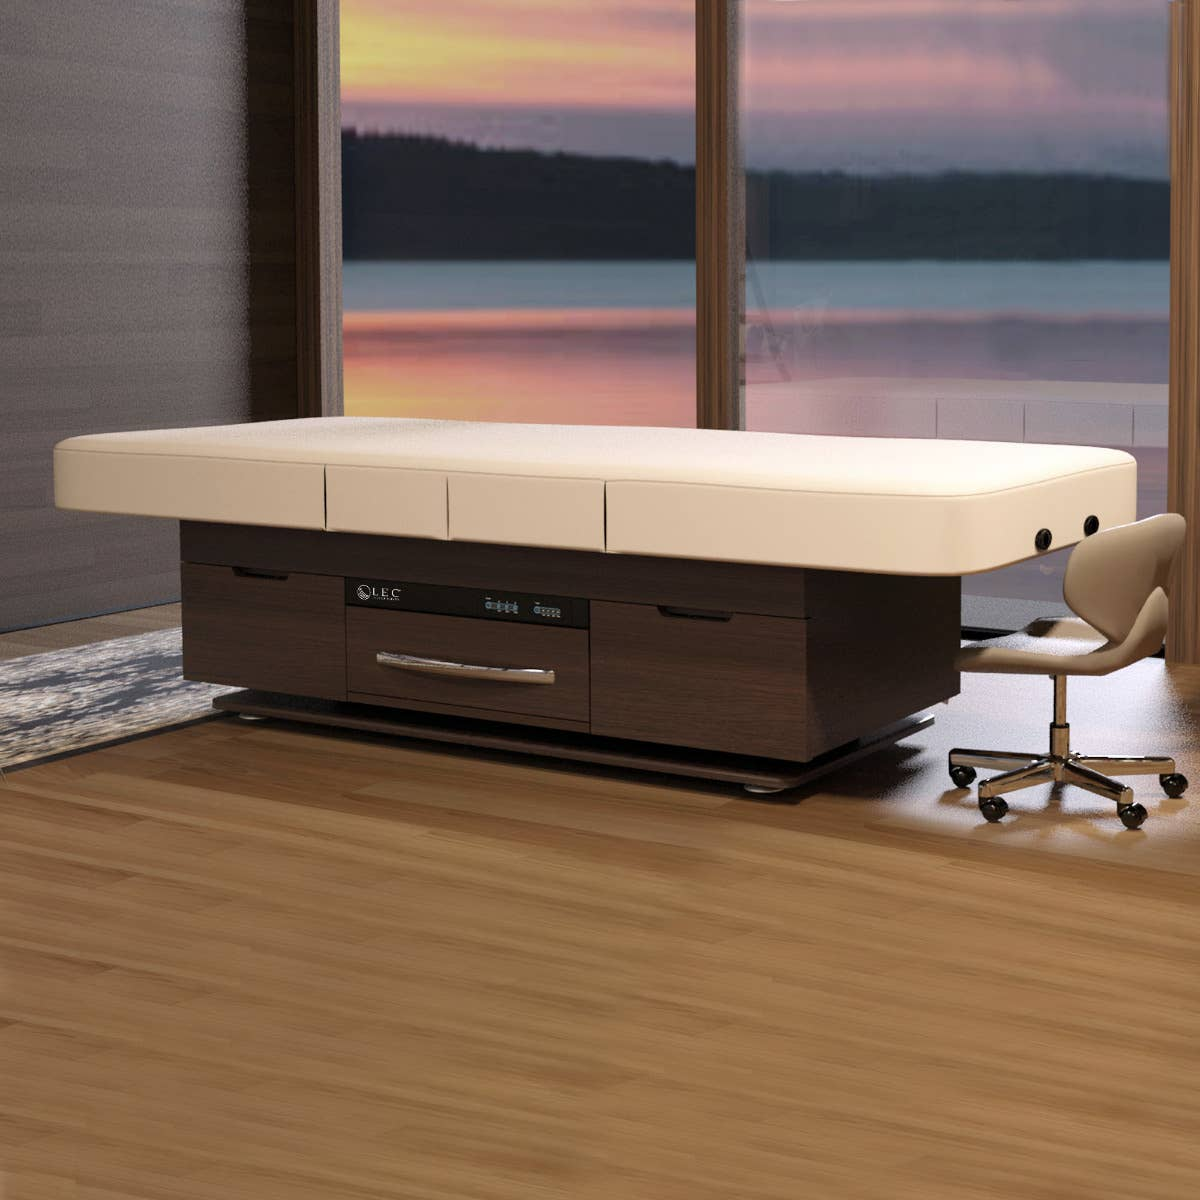 treatment-table_multipurpose_century-city_with-digital-warming-drawer_02